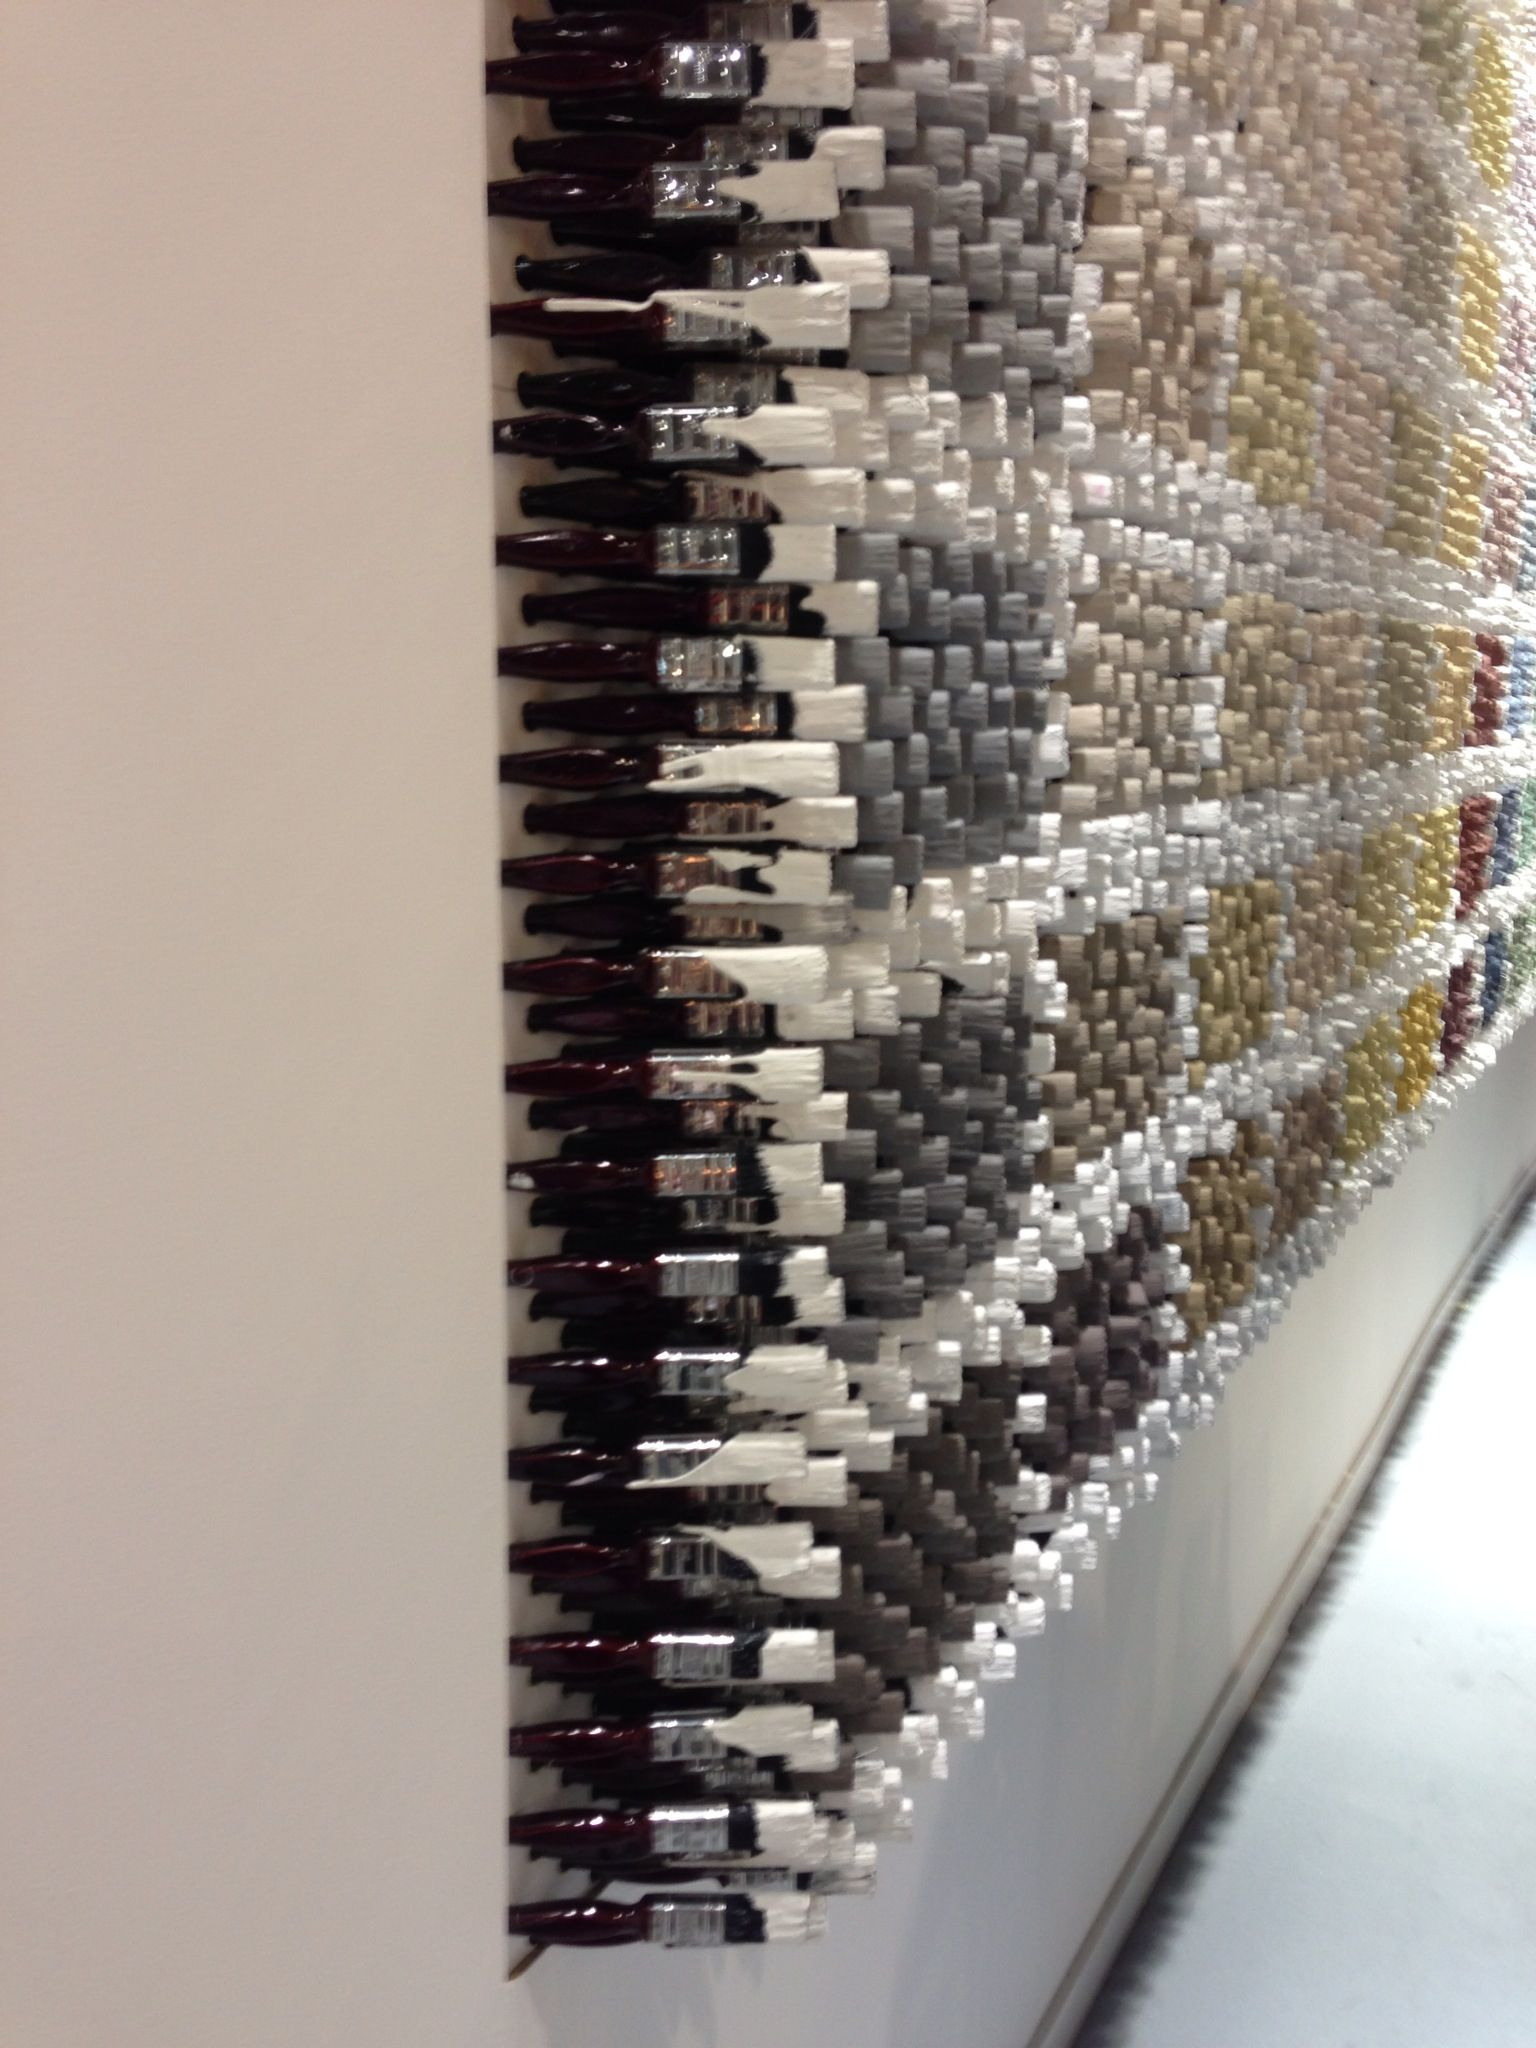 Paint brush display by Little Green Paint pany to show their